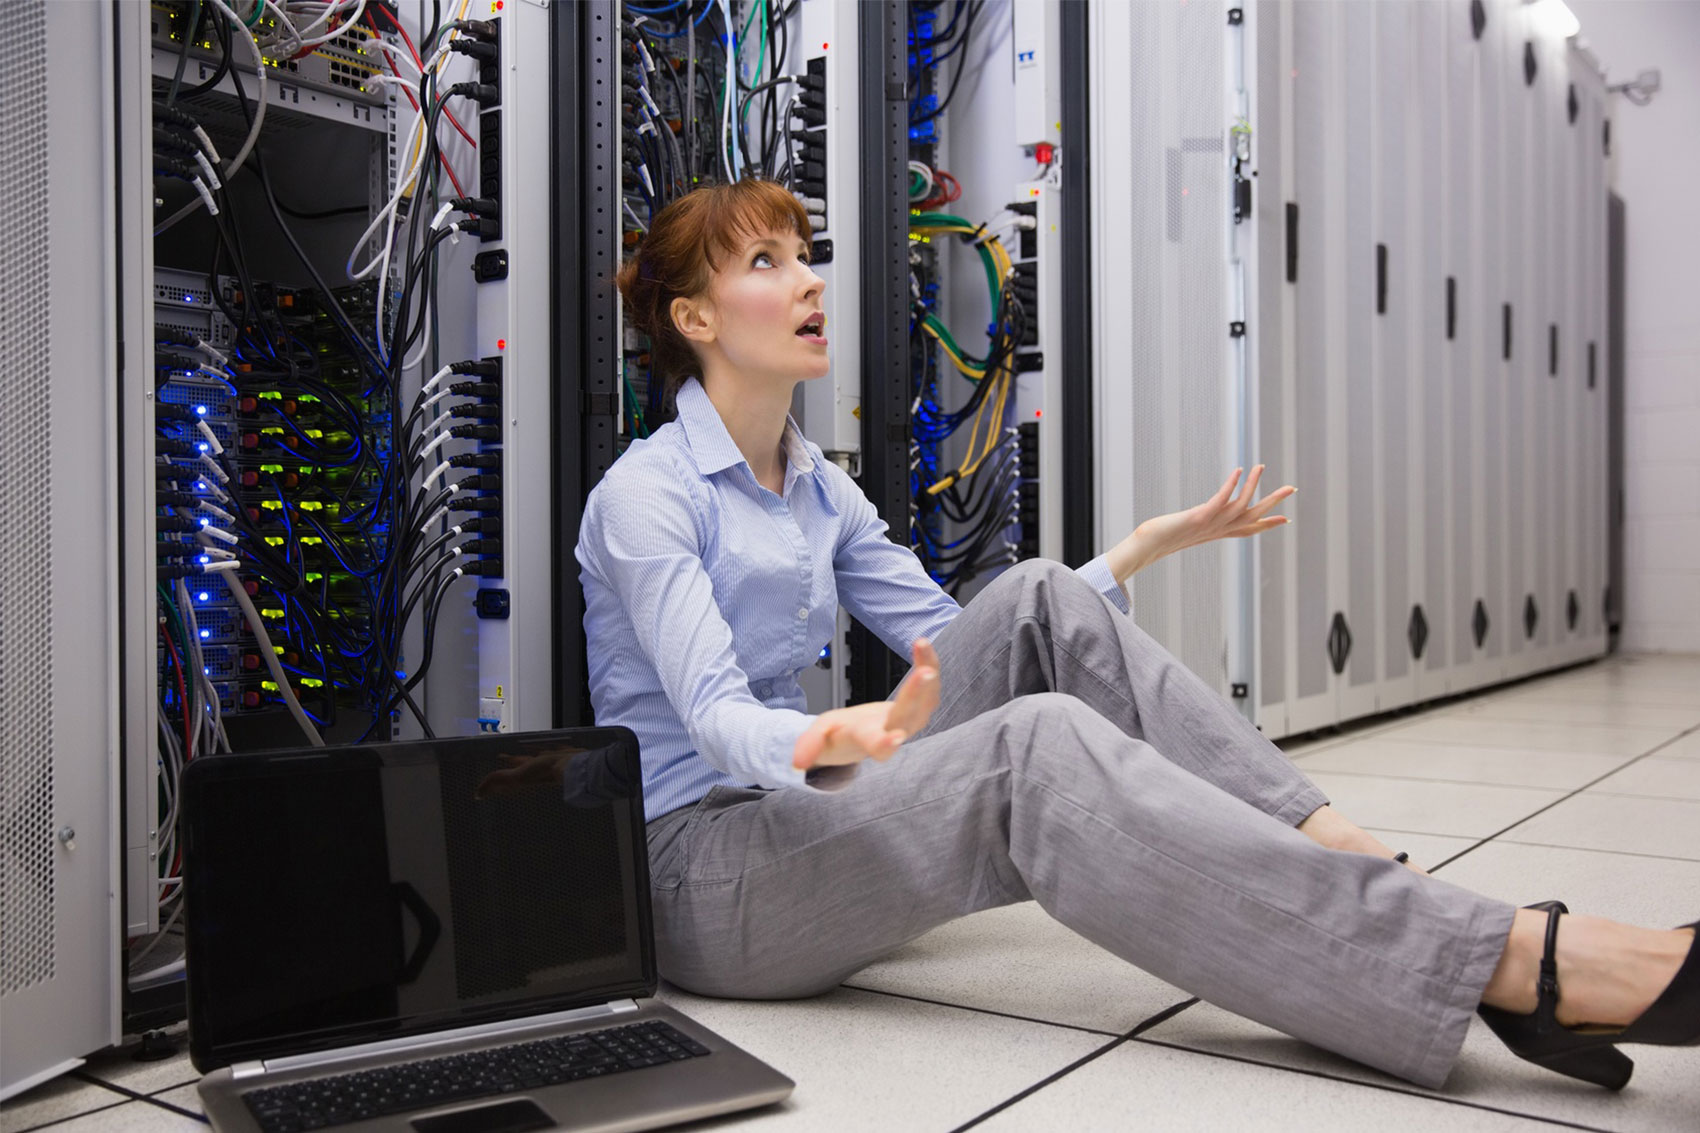 Server Support Before Your Server's Give-up!